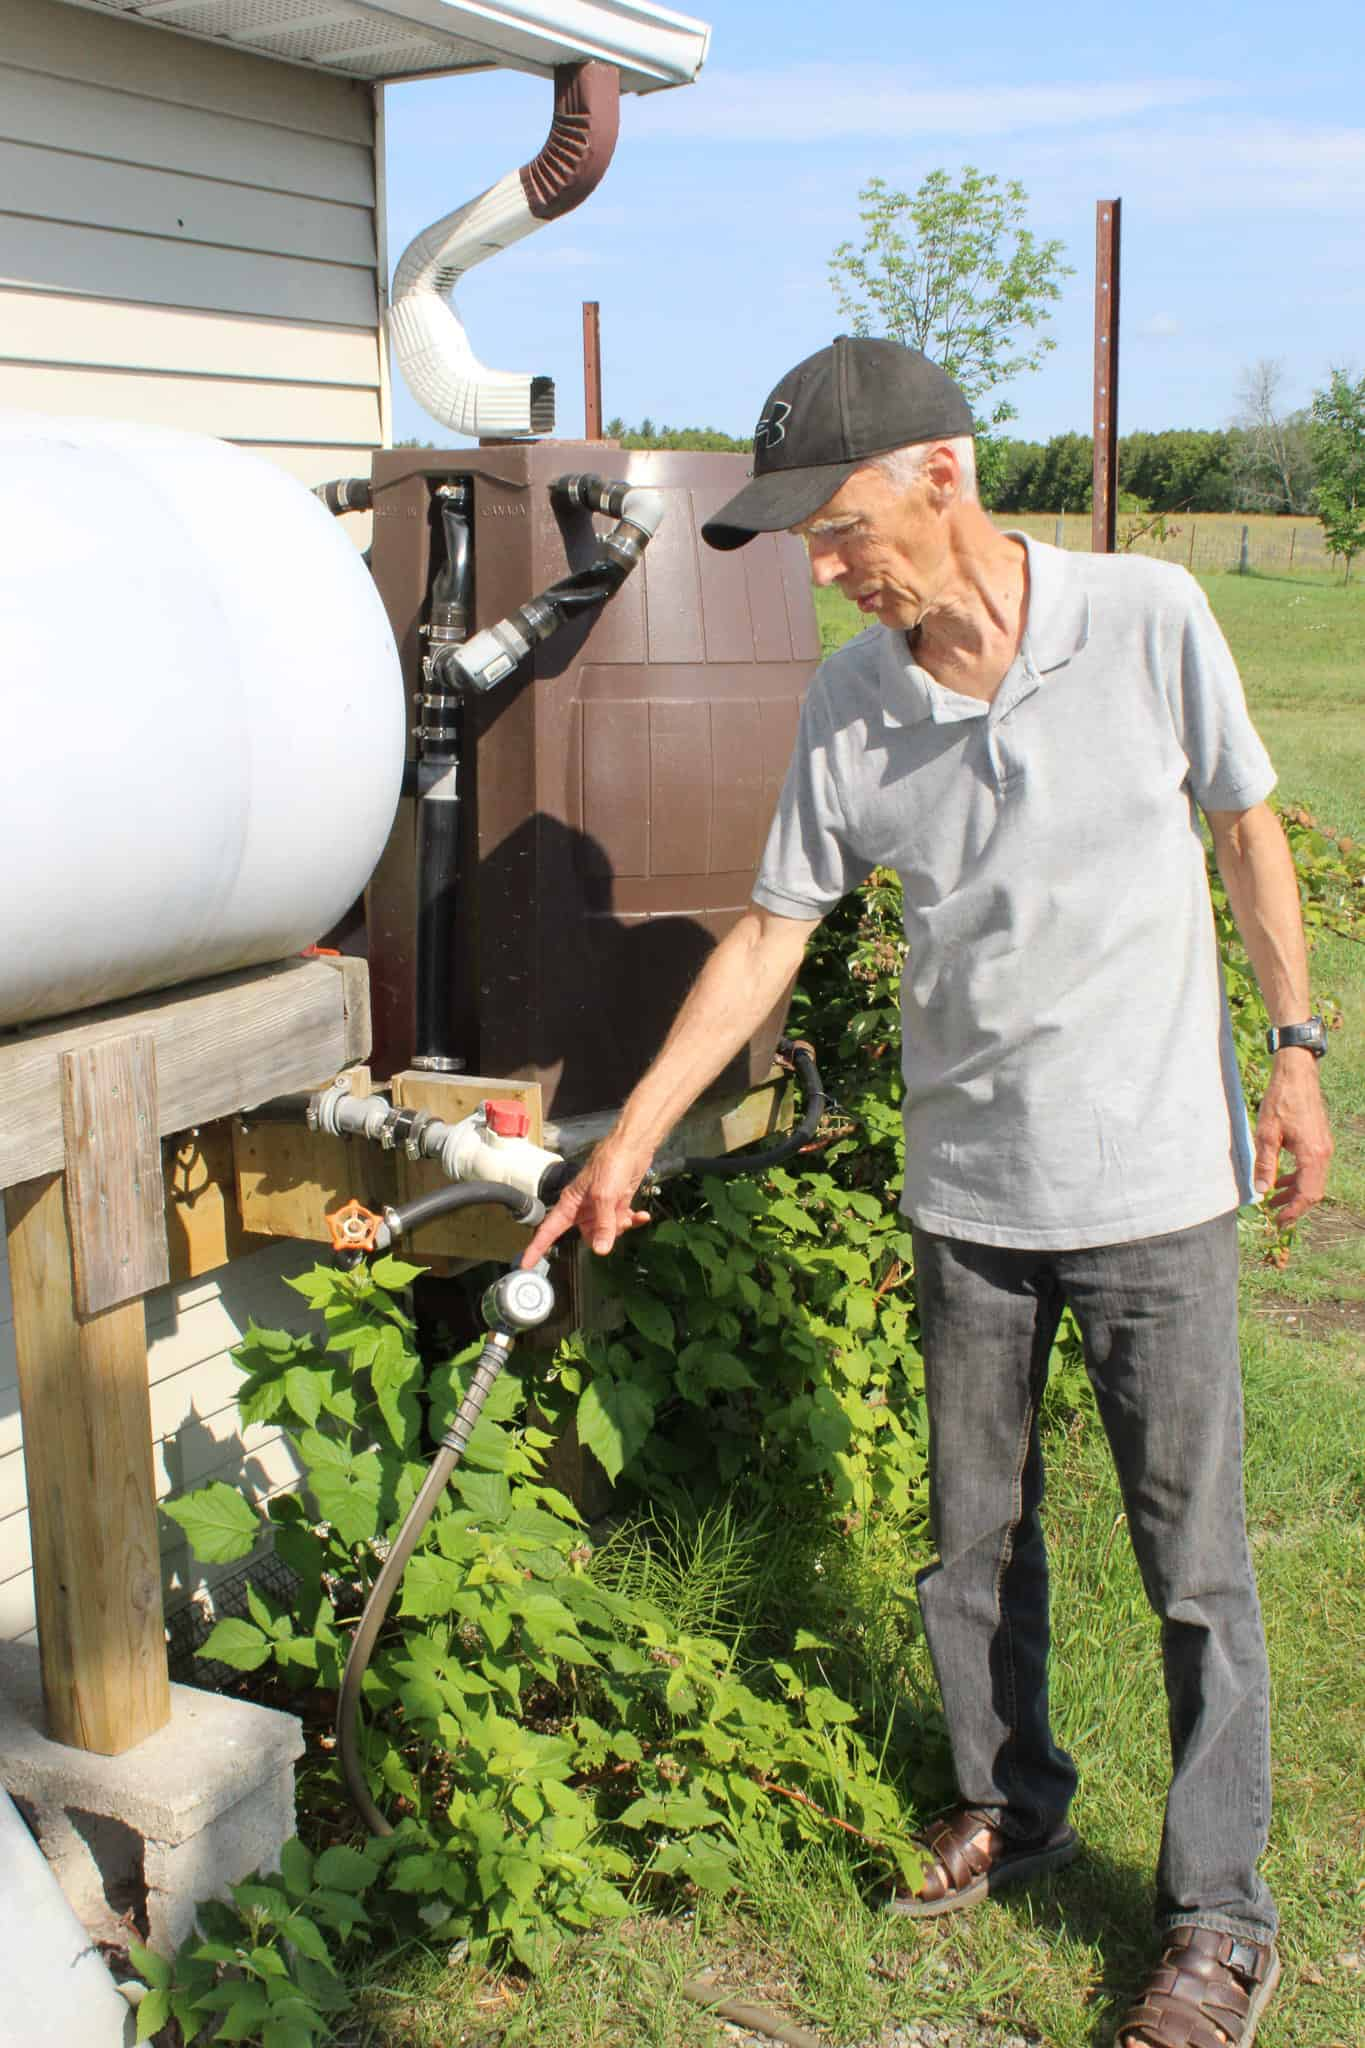 You are currently viewing Innovative ways to keep rural gardens hydrated